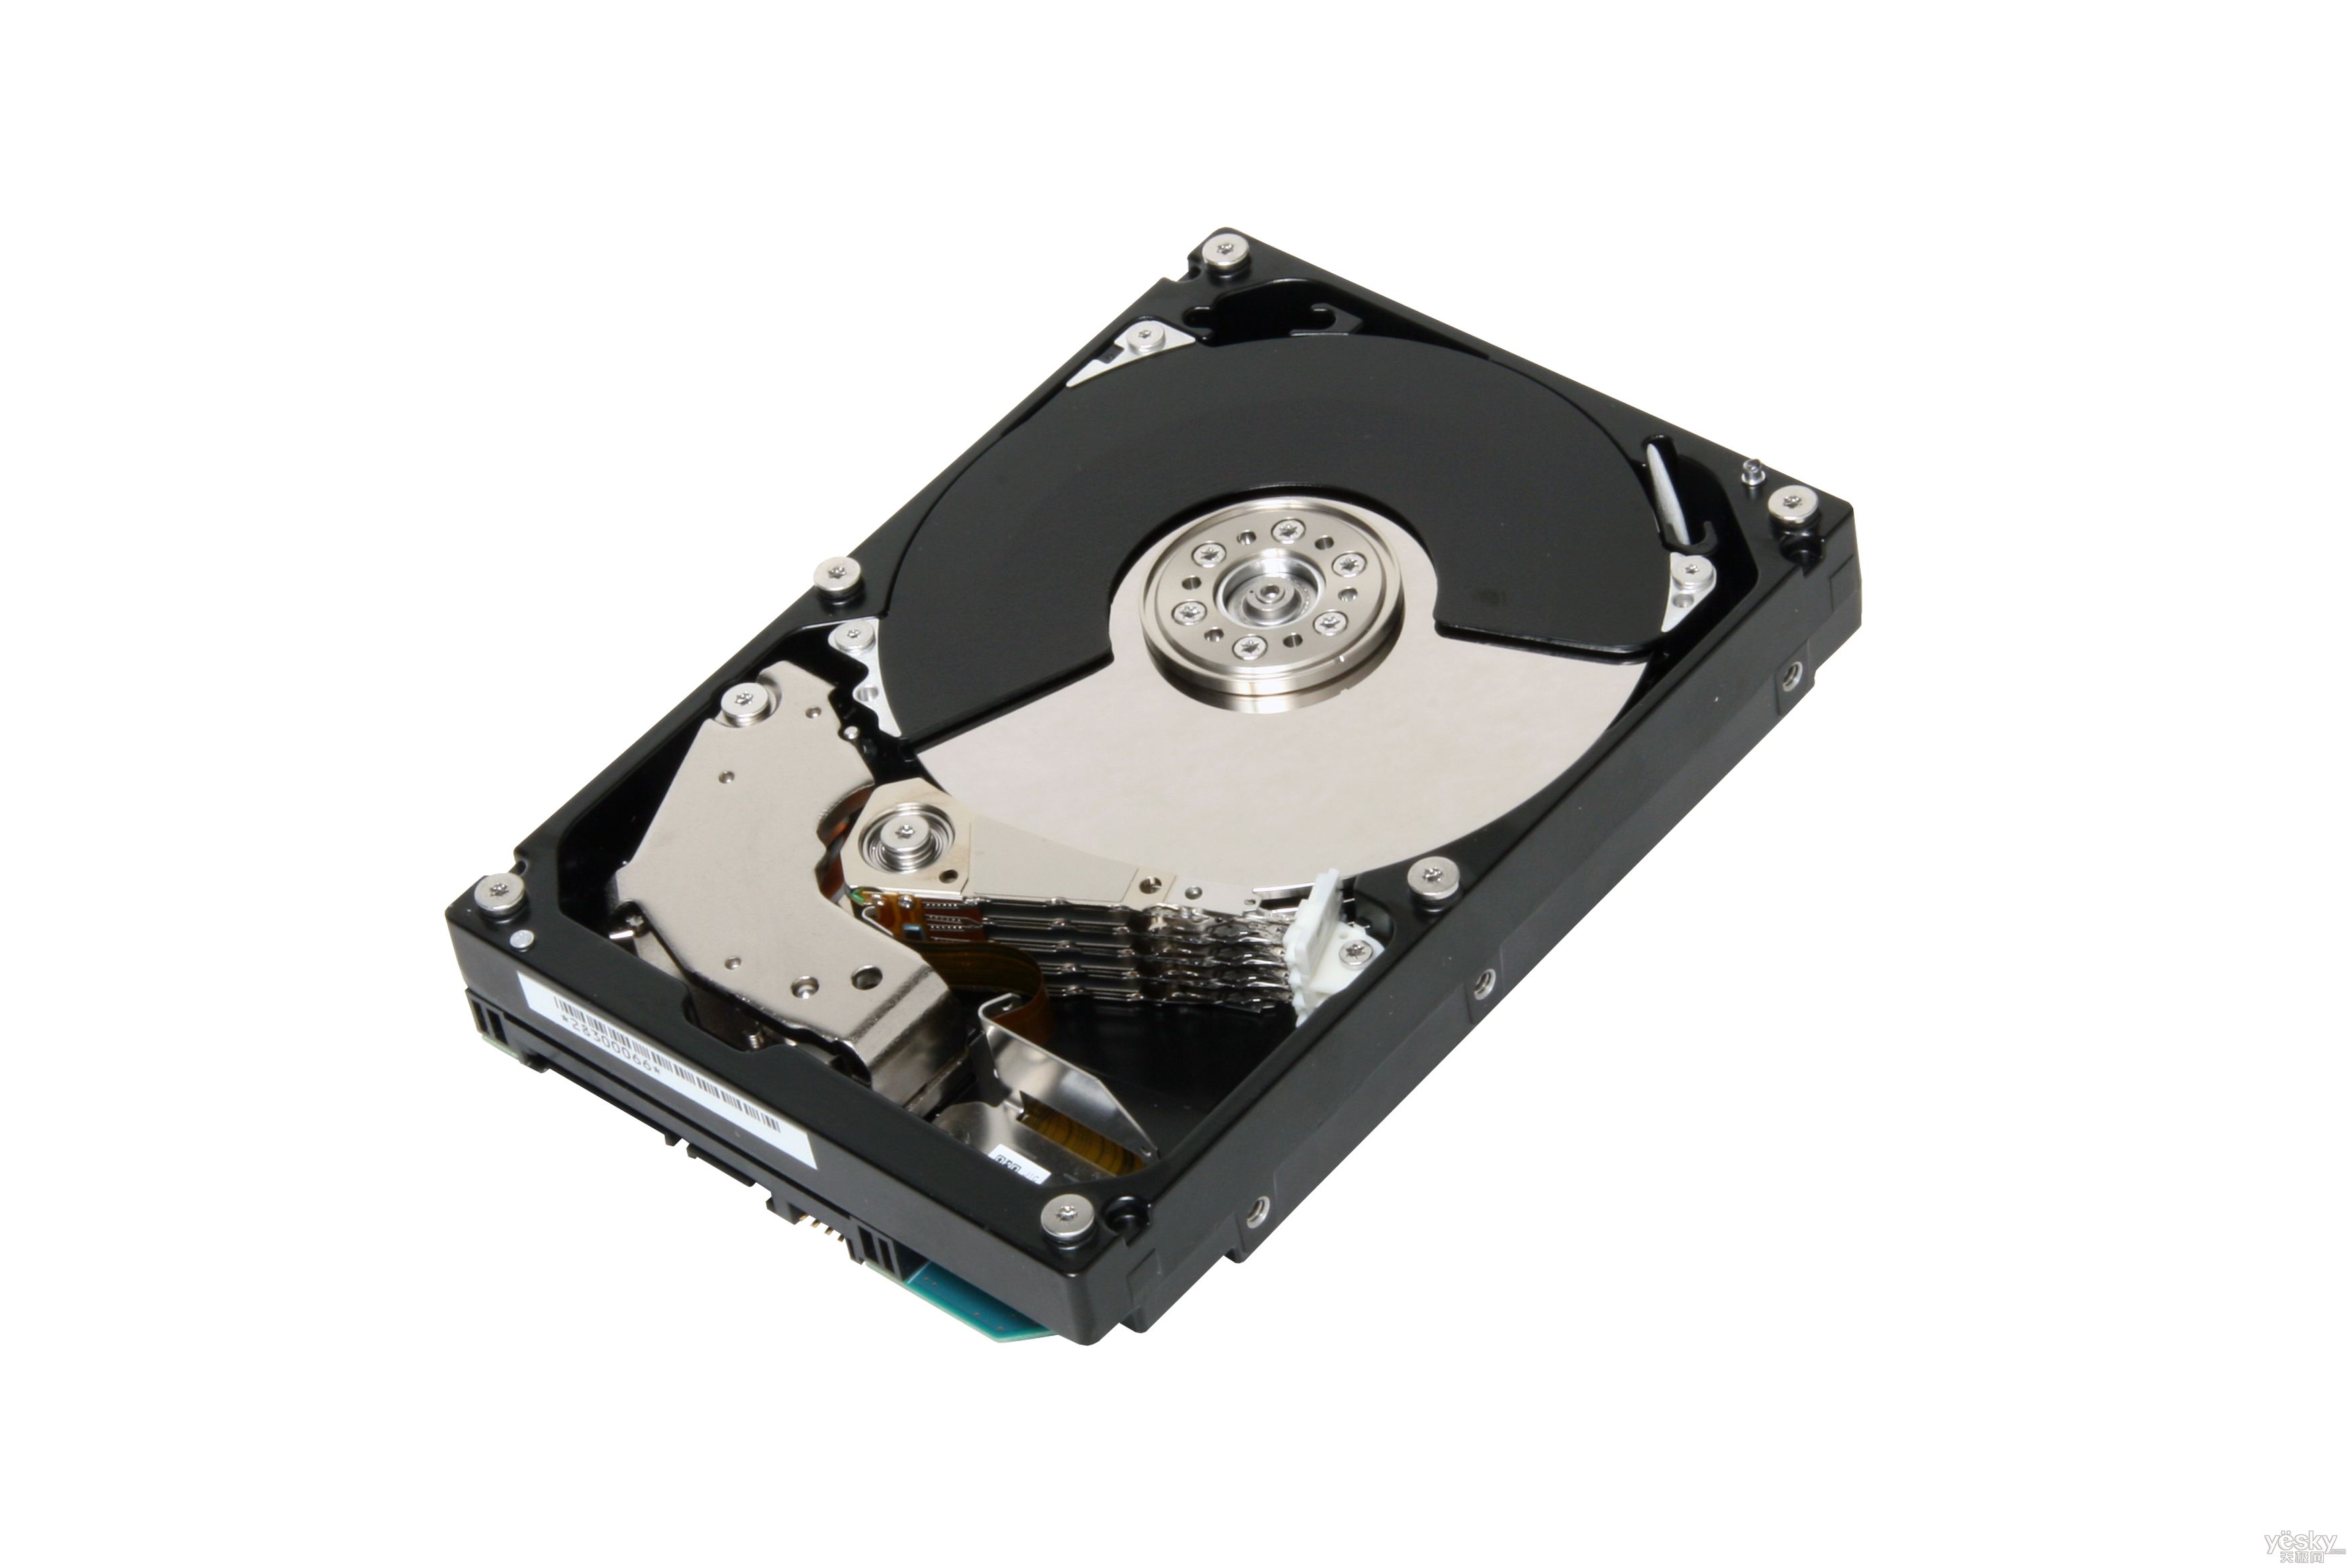 A Look at the Toshiba 2TB SATA 3.5âinch Computer Hard Drive - Image 1